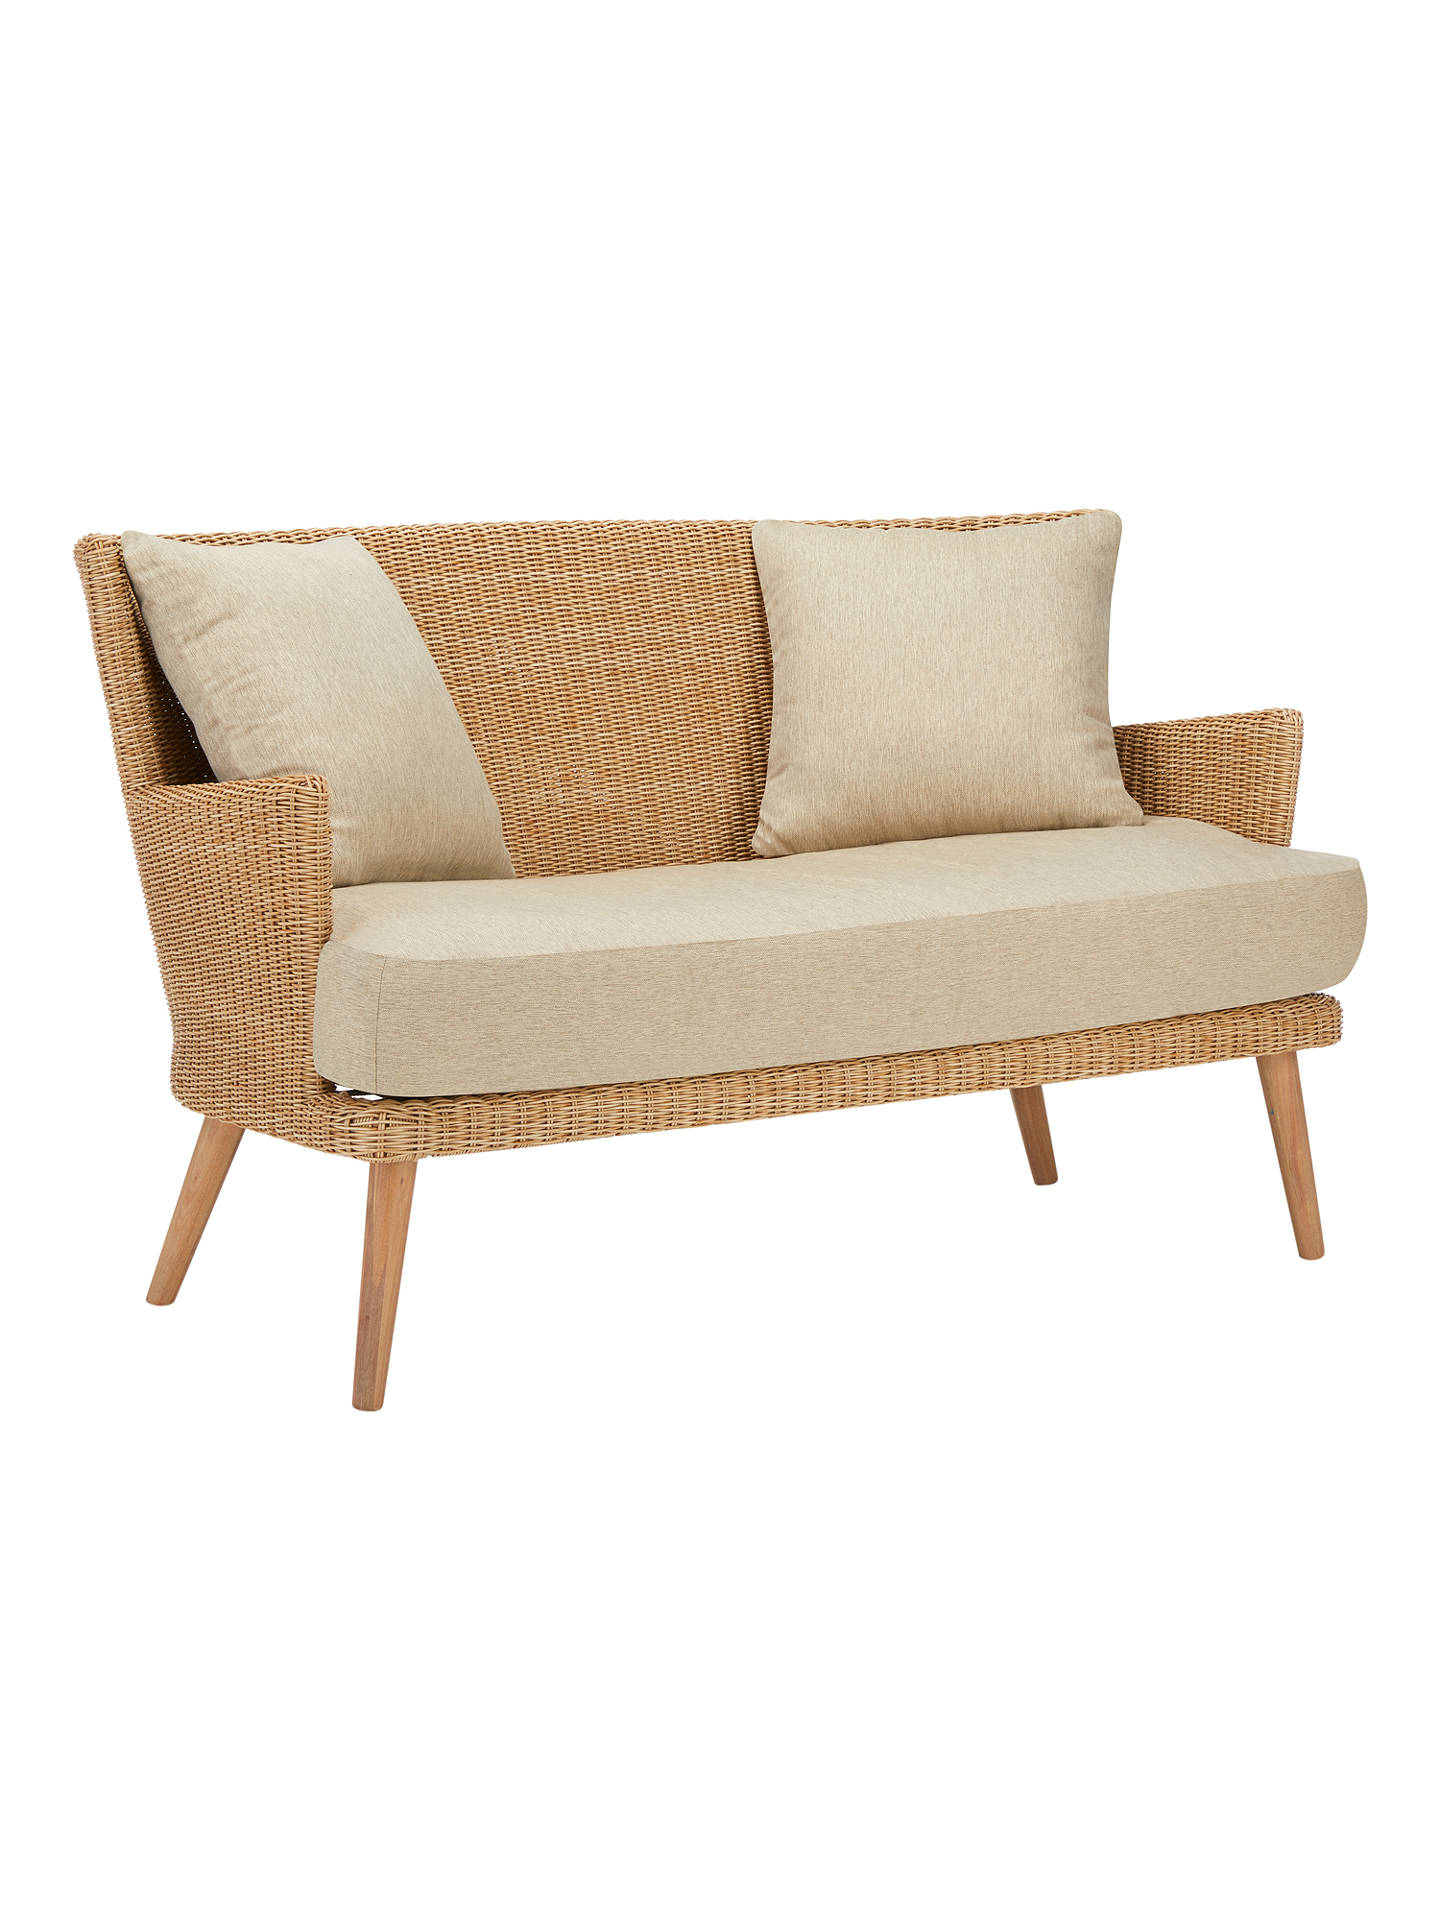 Buycroft collection iona 2 seater outdoor sofa fsc certified eucalyptus natural